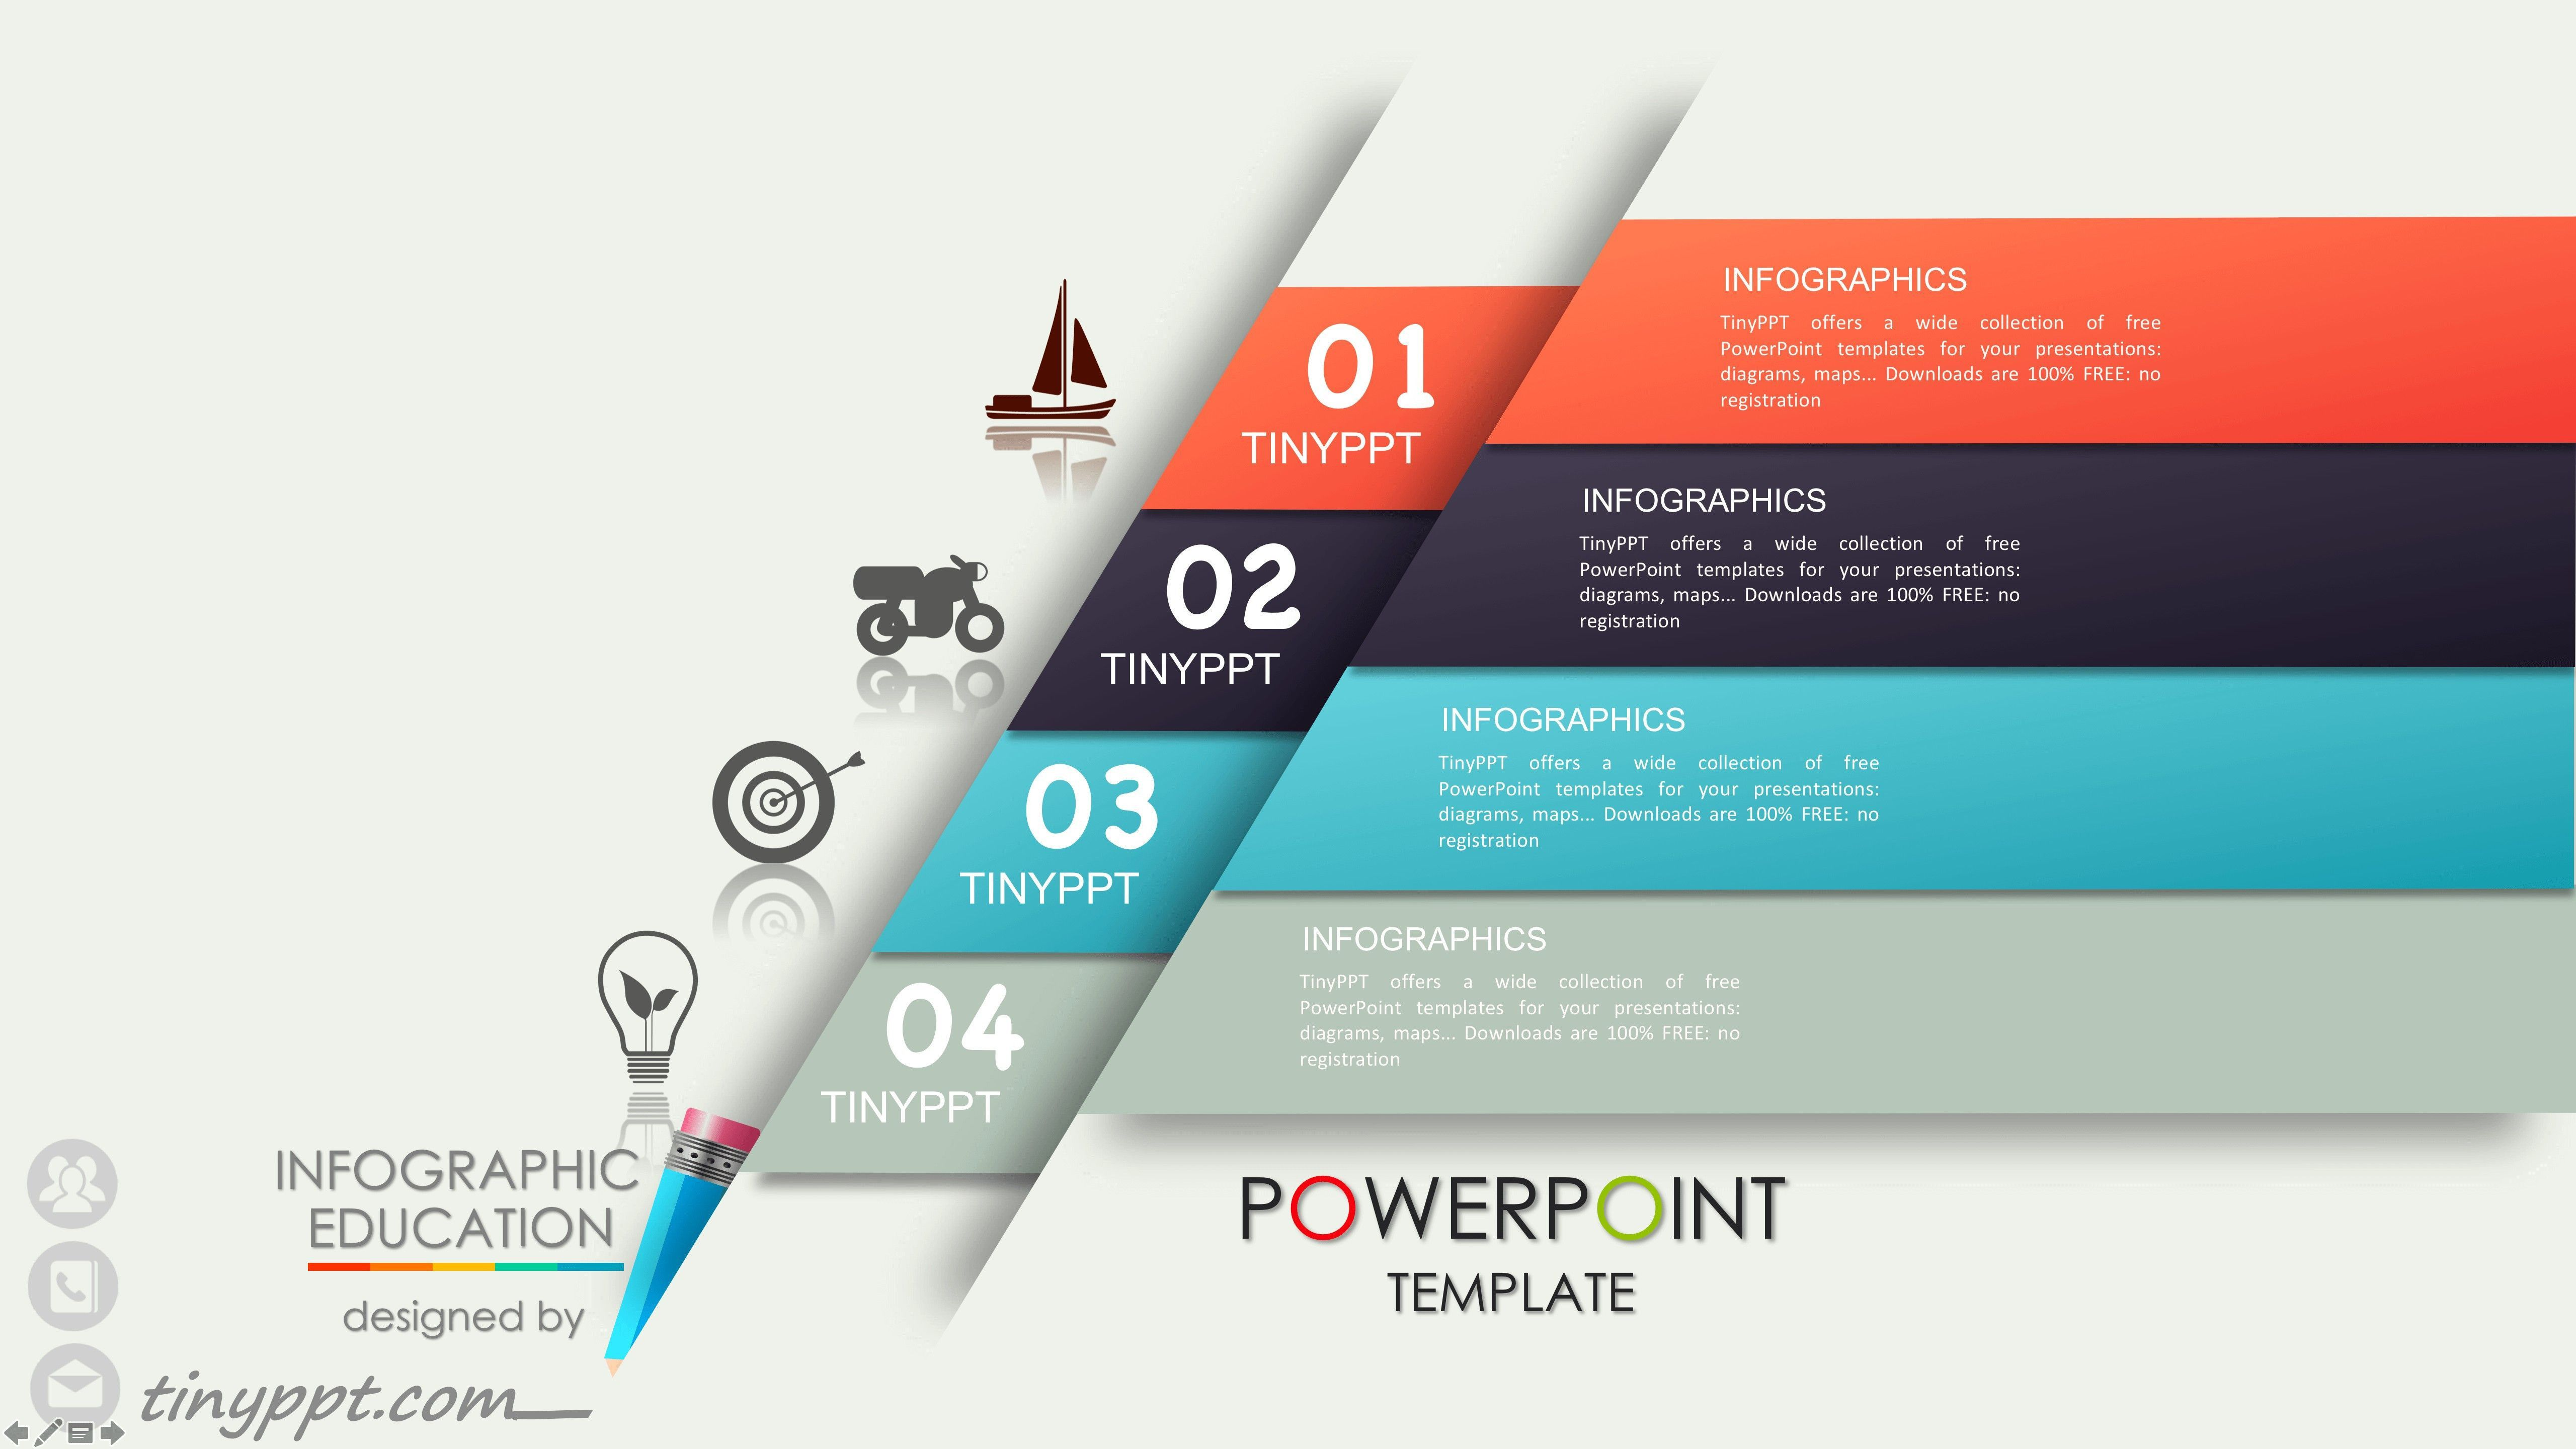 13 Top Download Templates In 2020 Powerpoint Background Templates Infographic Powerpoint Powerpoint Template Free